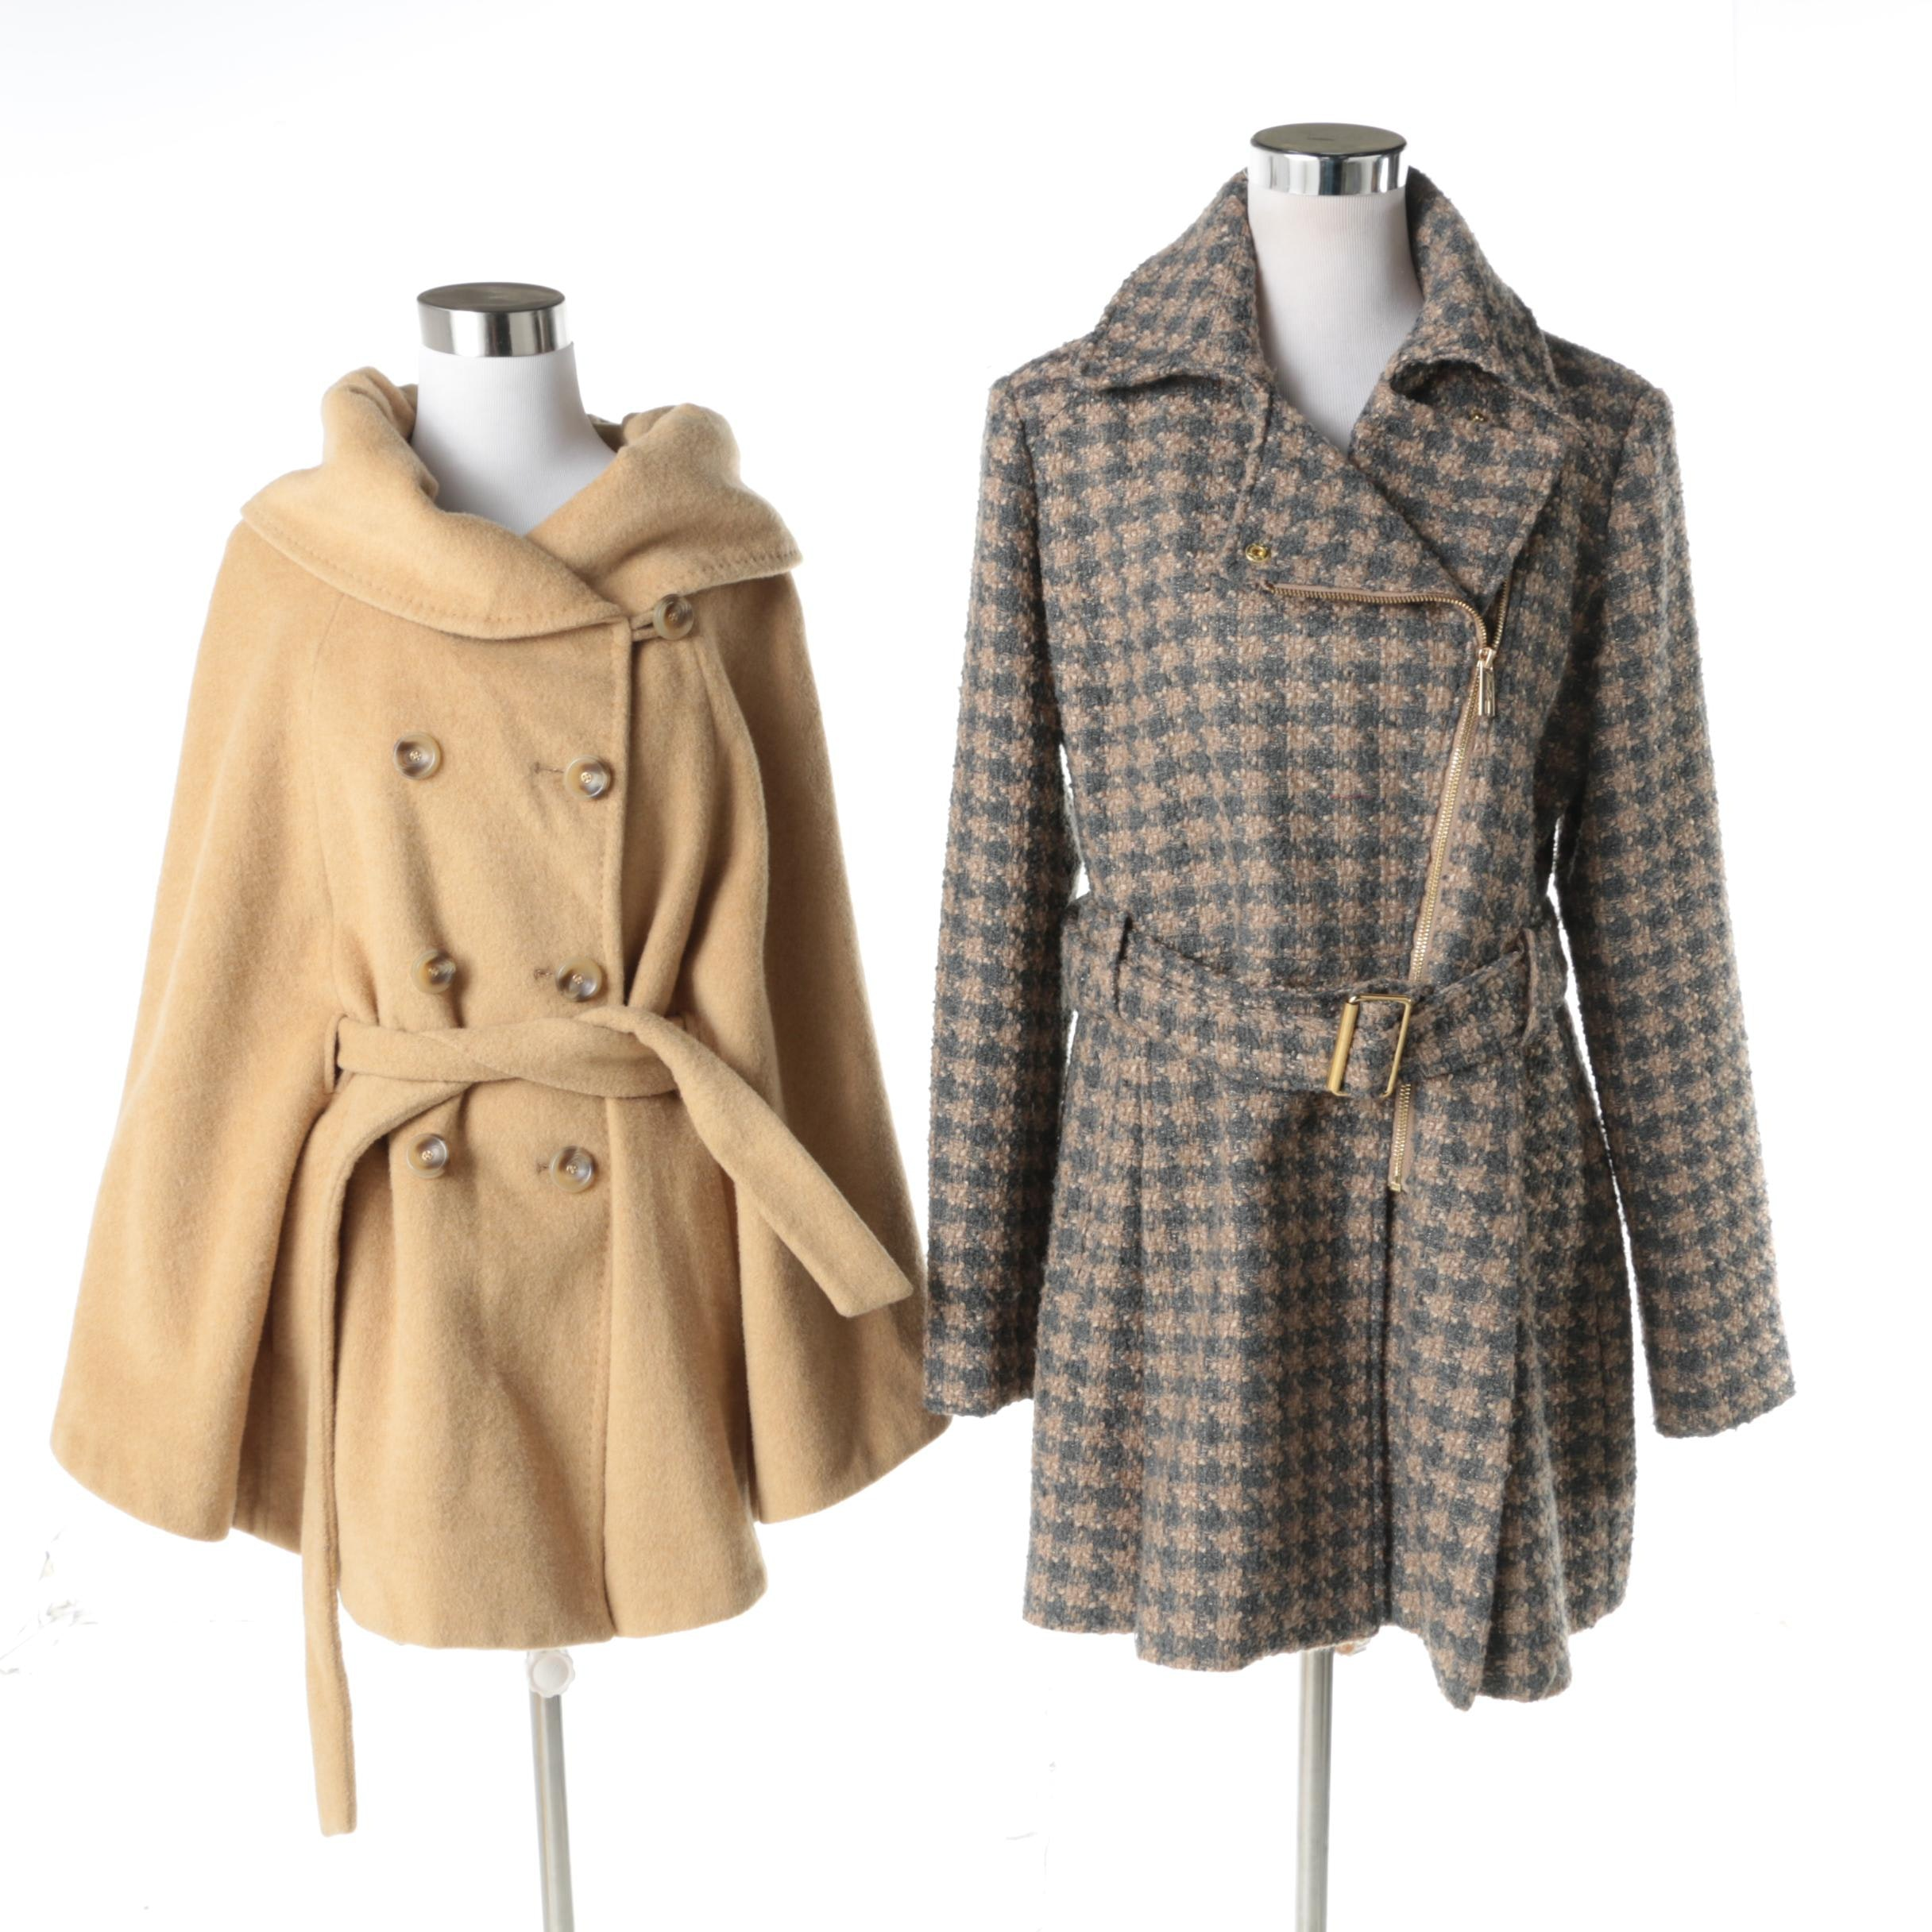 Women's Coats by Calvin Klein and Kenneth Cole